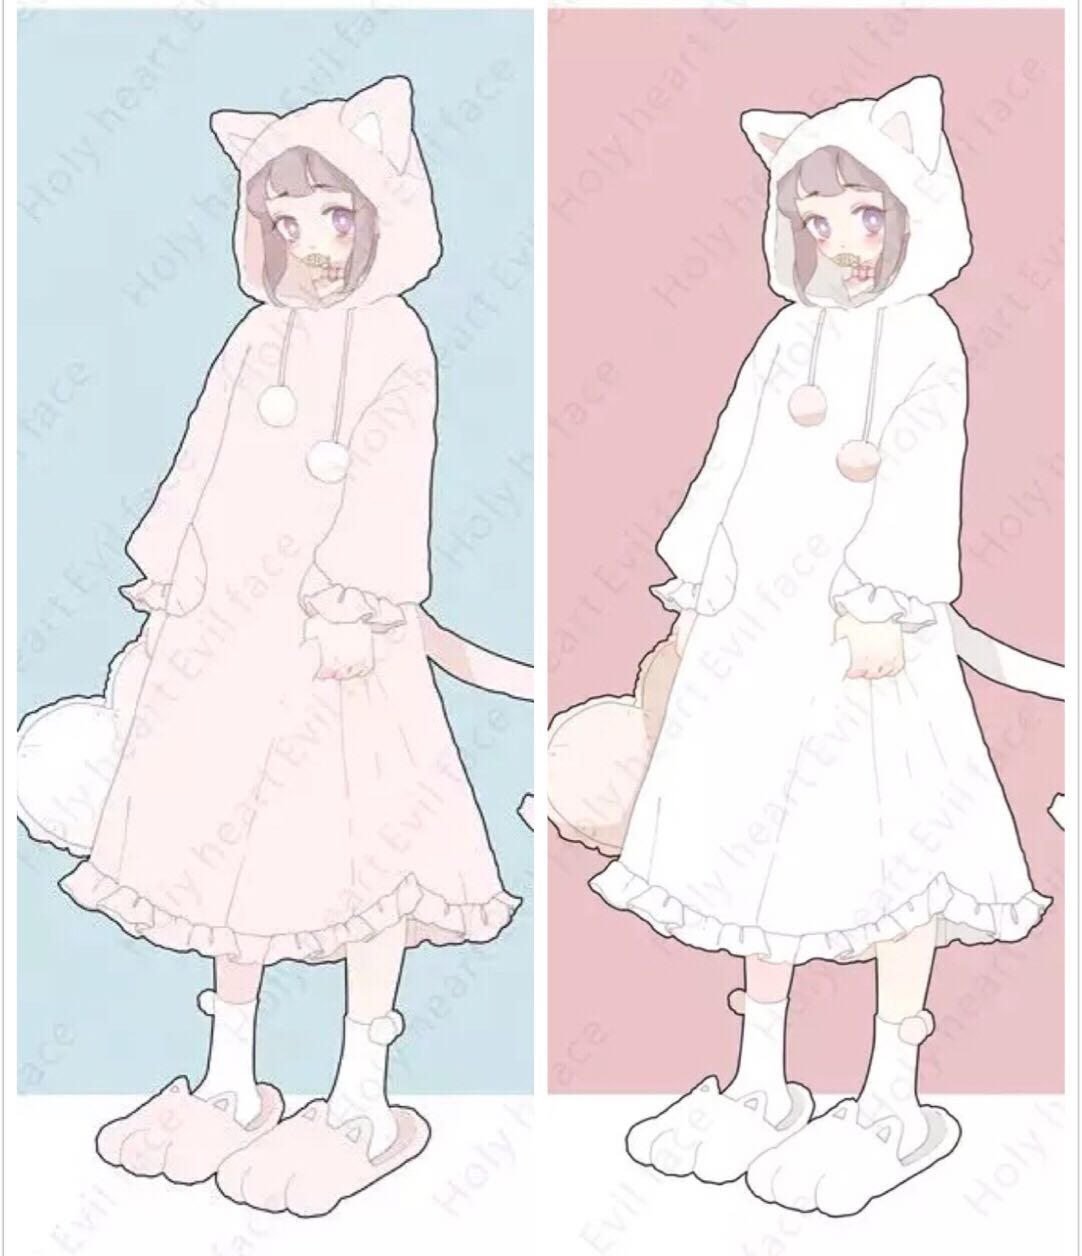 Buy Sleeping Dress Cute And Get Free Shipping On AliExpress